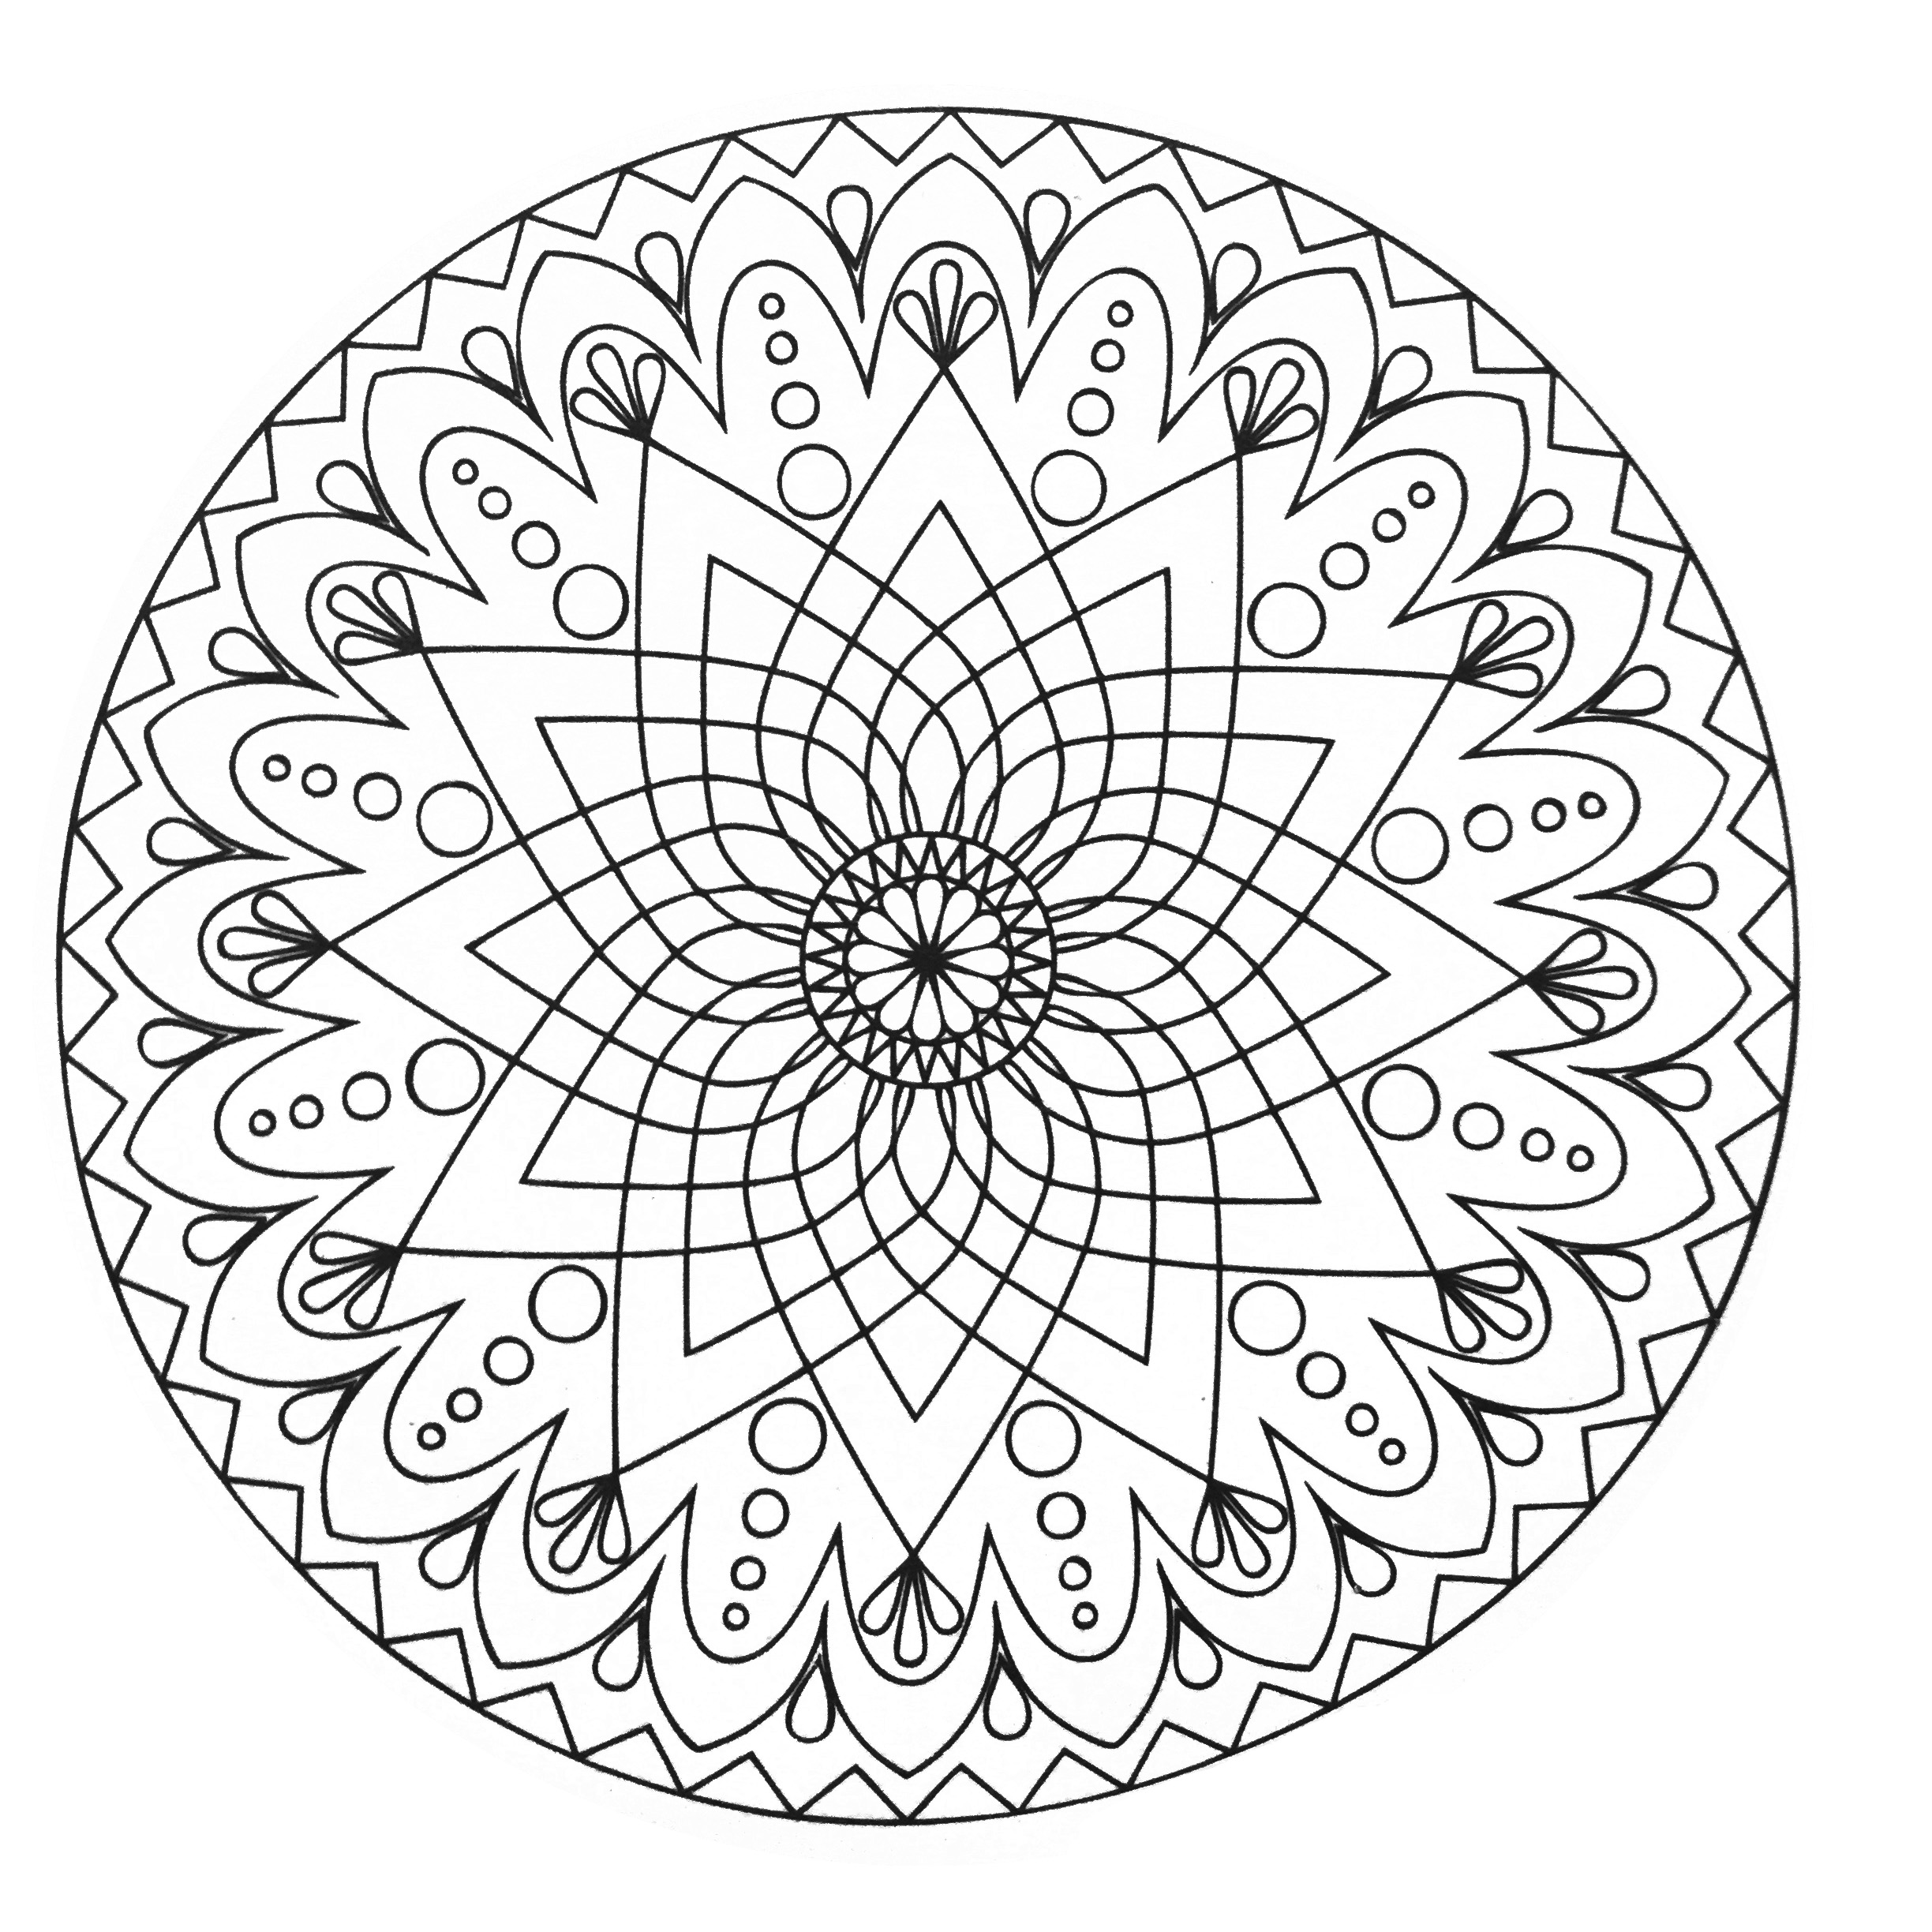 Mandala abstract simple - M&alas Adult Coloring Pages